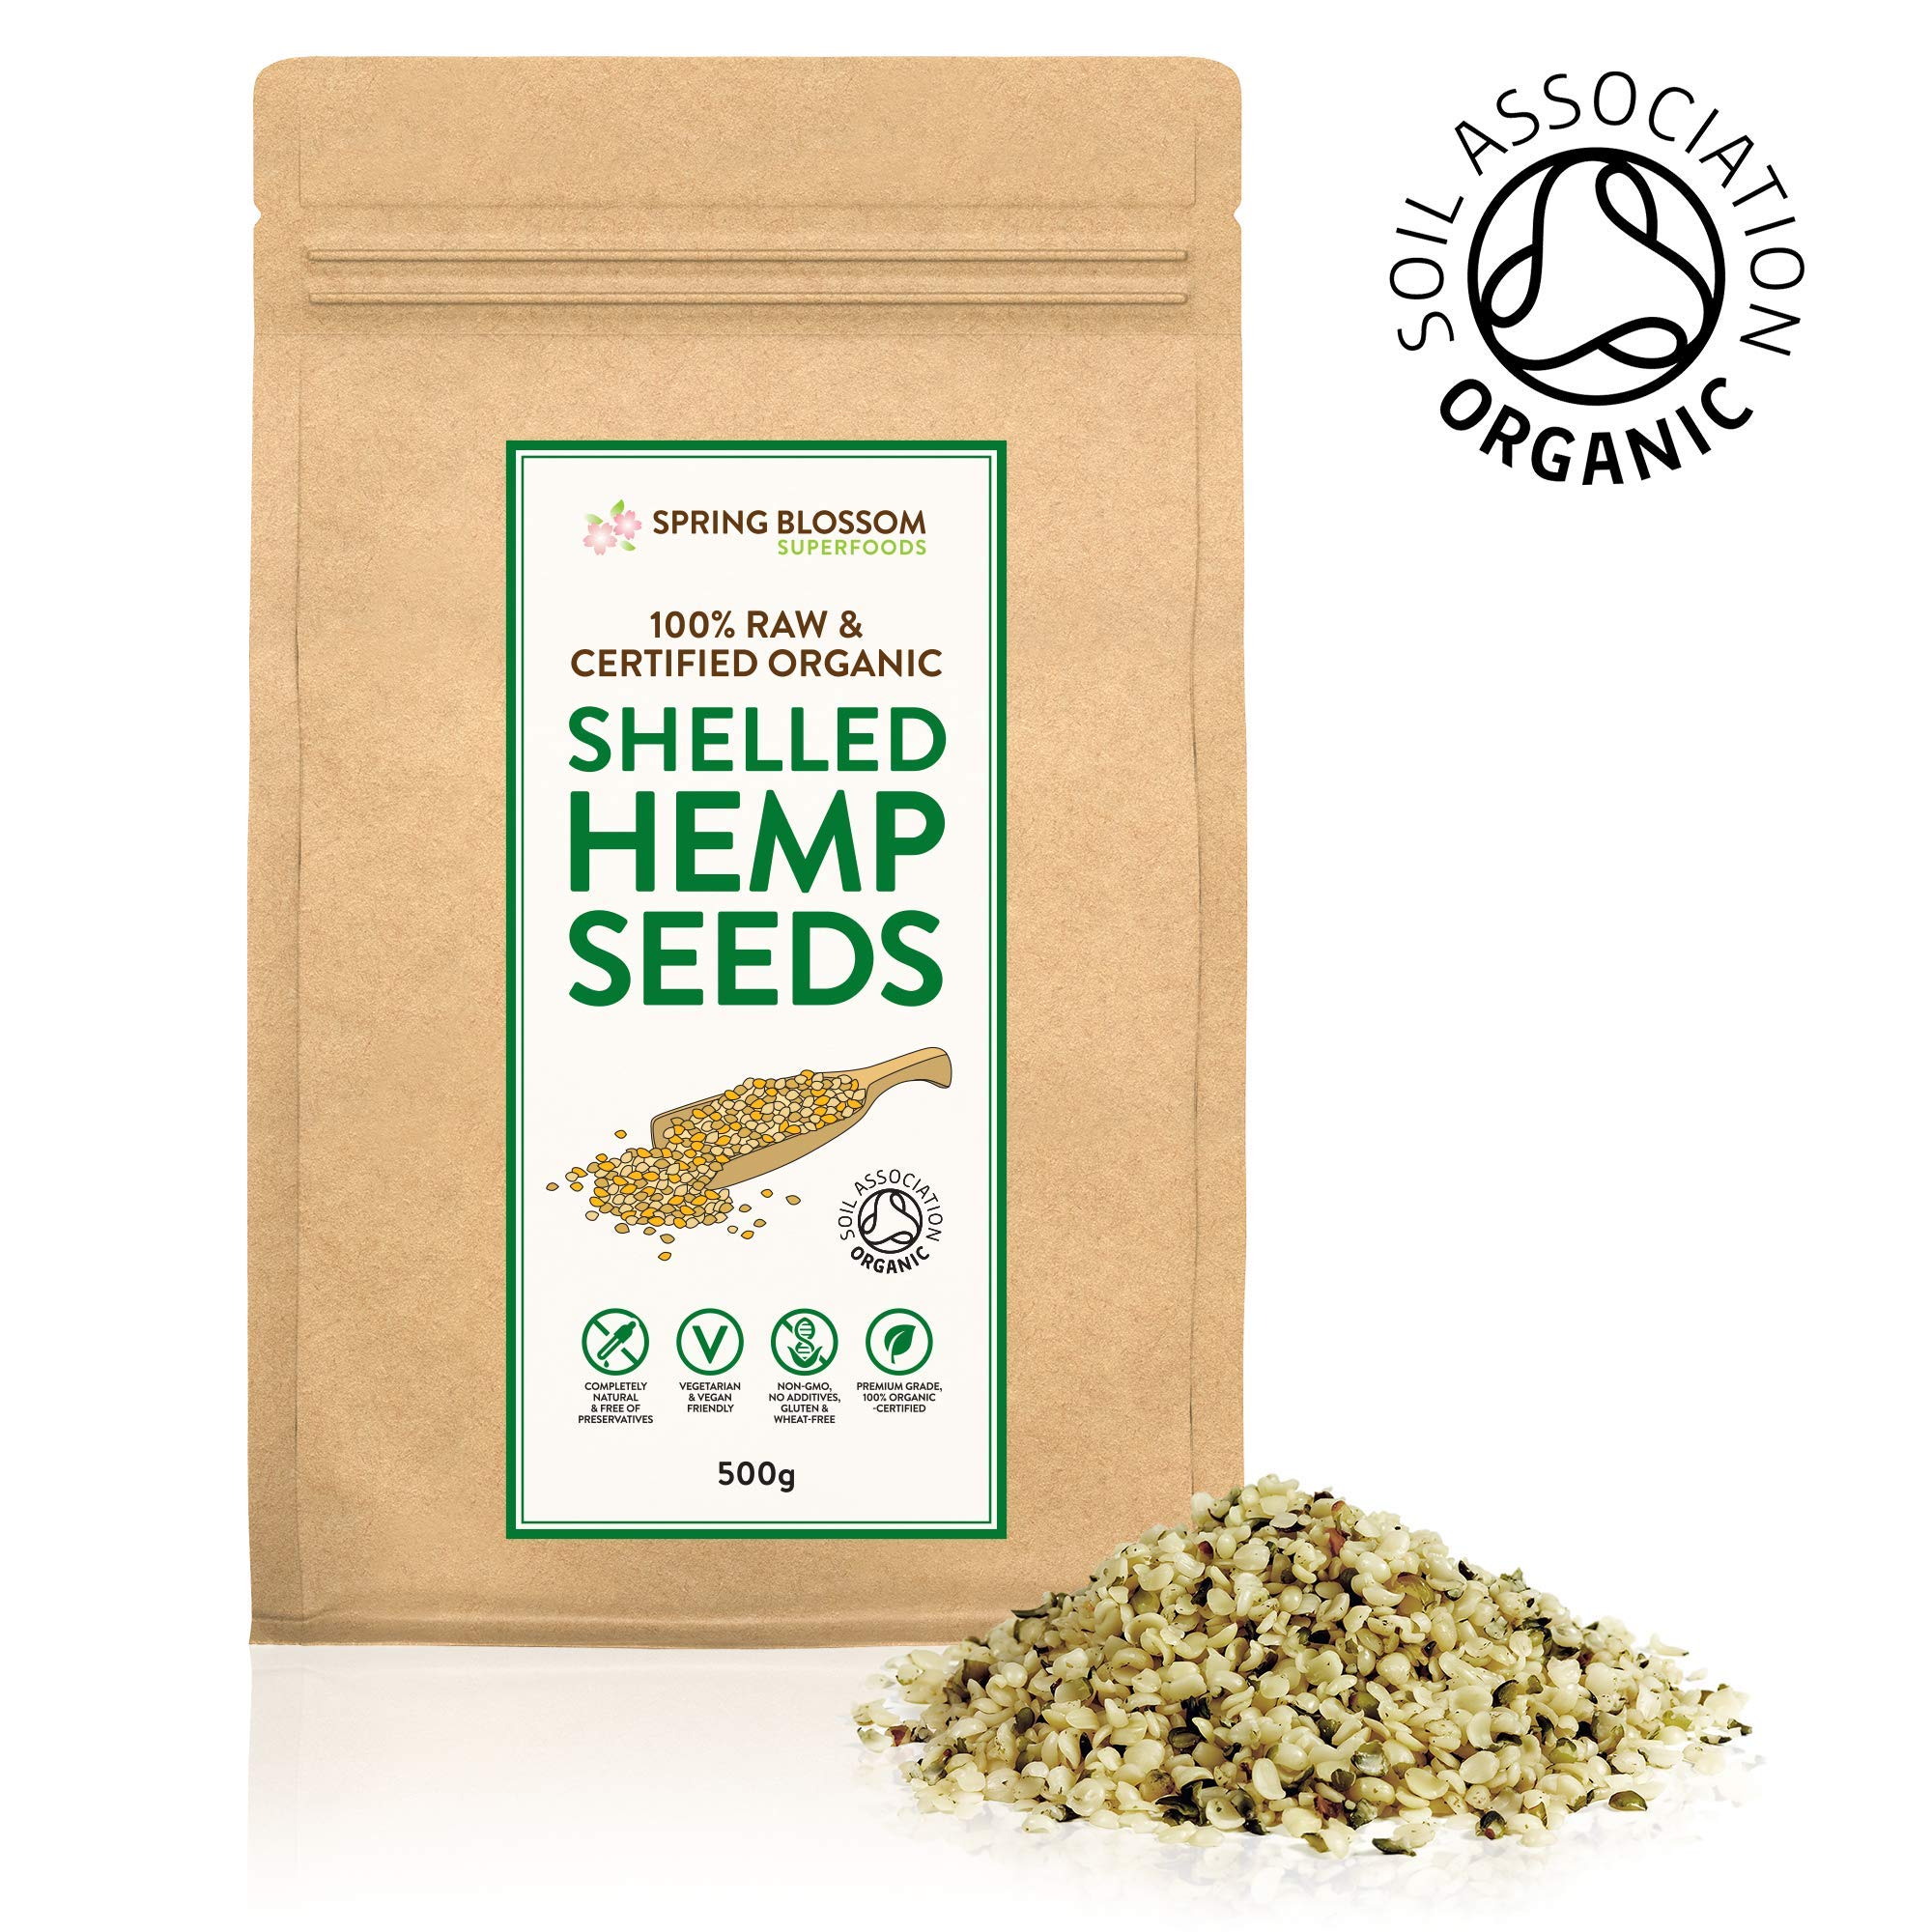 500g Raw Organic Shelled (Hulled) Hemp Seeds Hearts Healthy Snack Rich in Protein, Omega 3 & 6, Amino Acids and Minerals, Gluten-Free, Vegan, Superfood in Resealable Pouch, Soil Association Certified